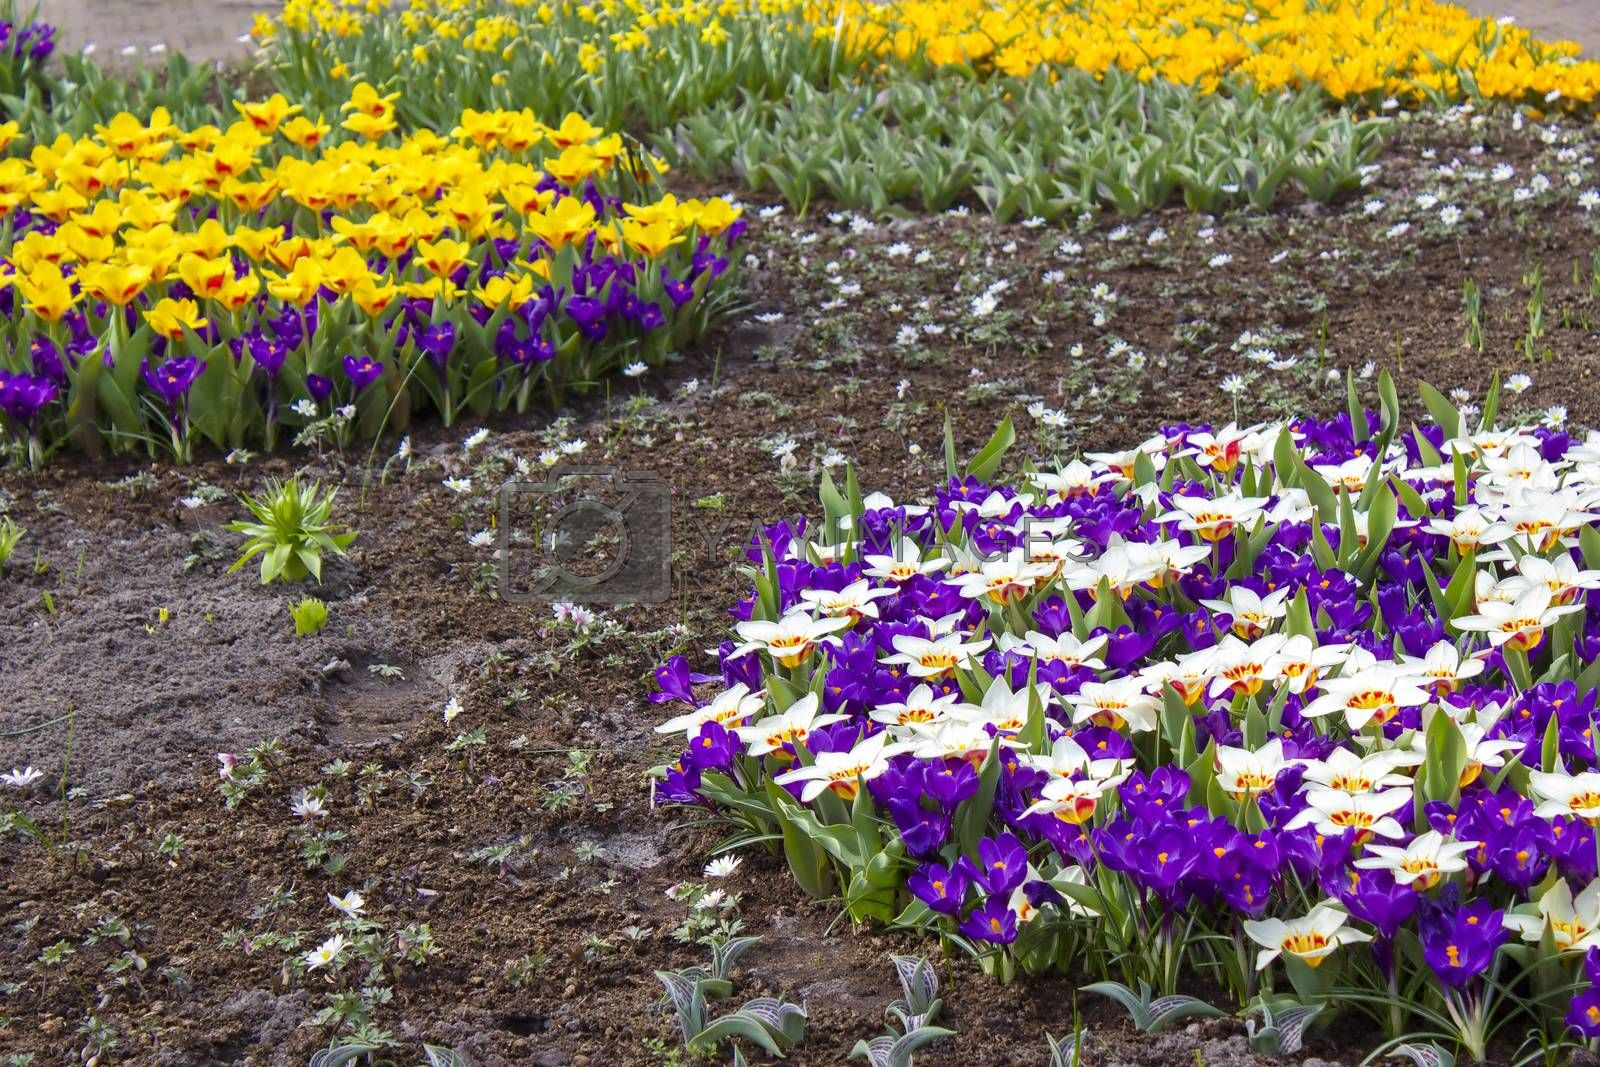 Colorful spring flowers in the park - crocus and tulips